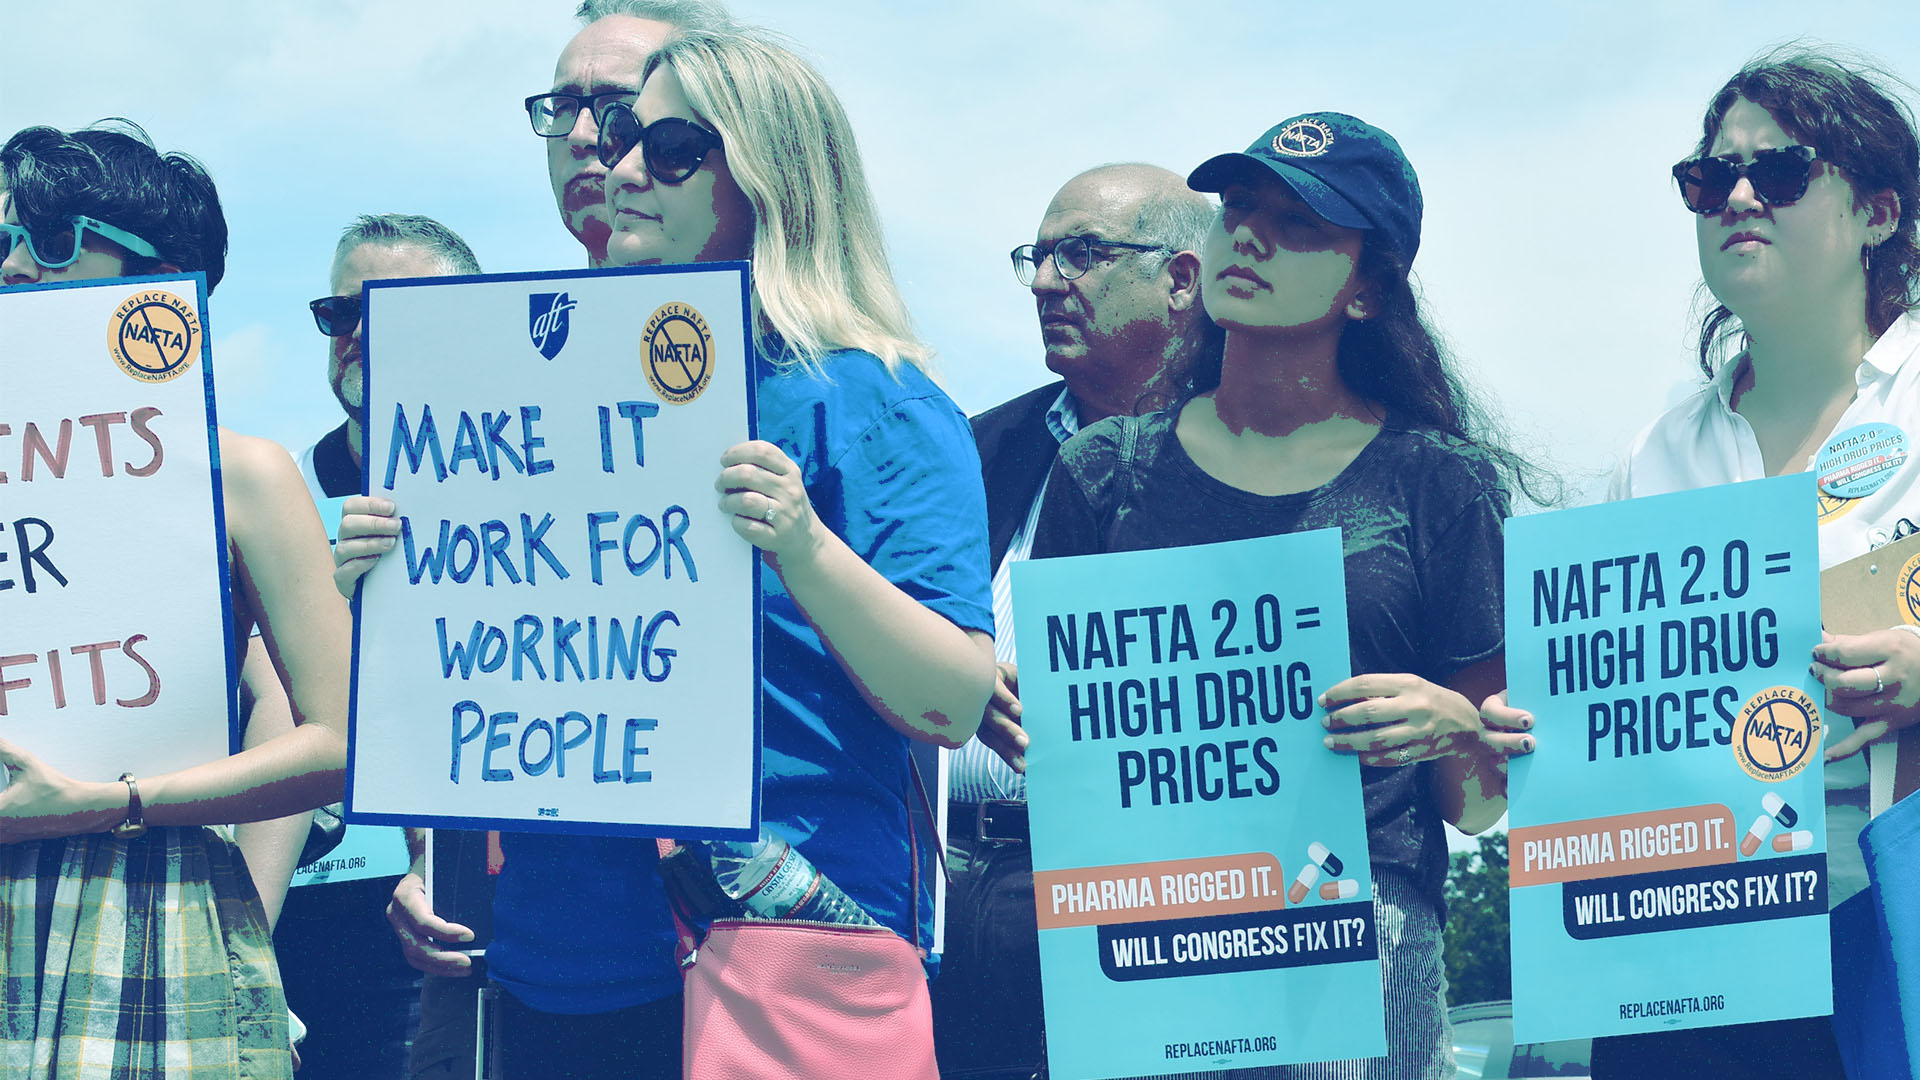 trade-justice-warriors-at-a-NAFTA-rally-protest